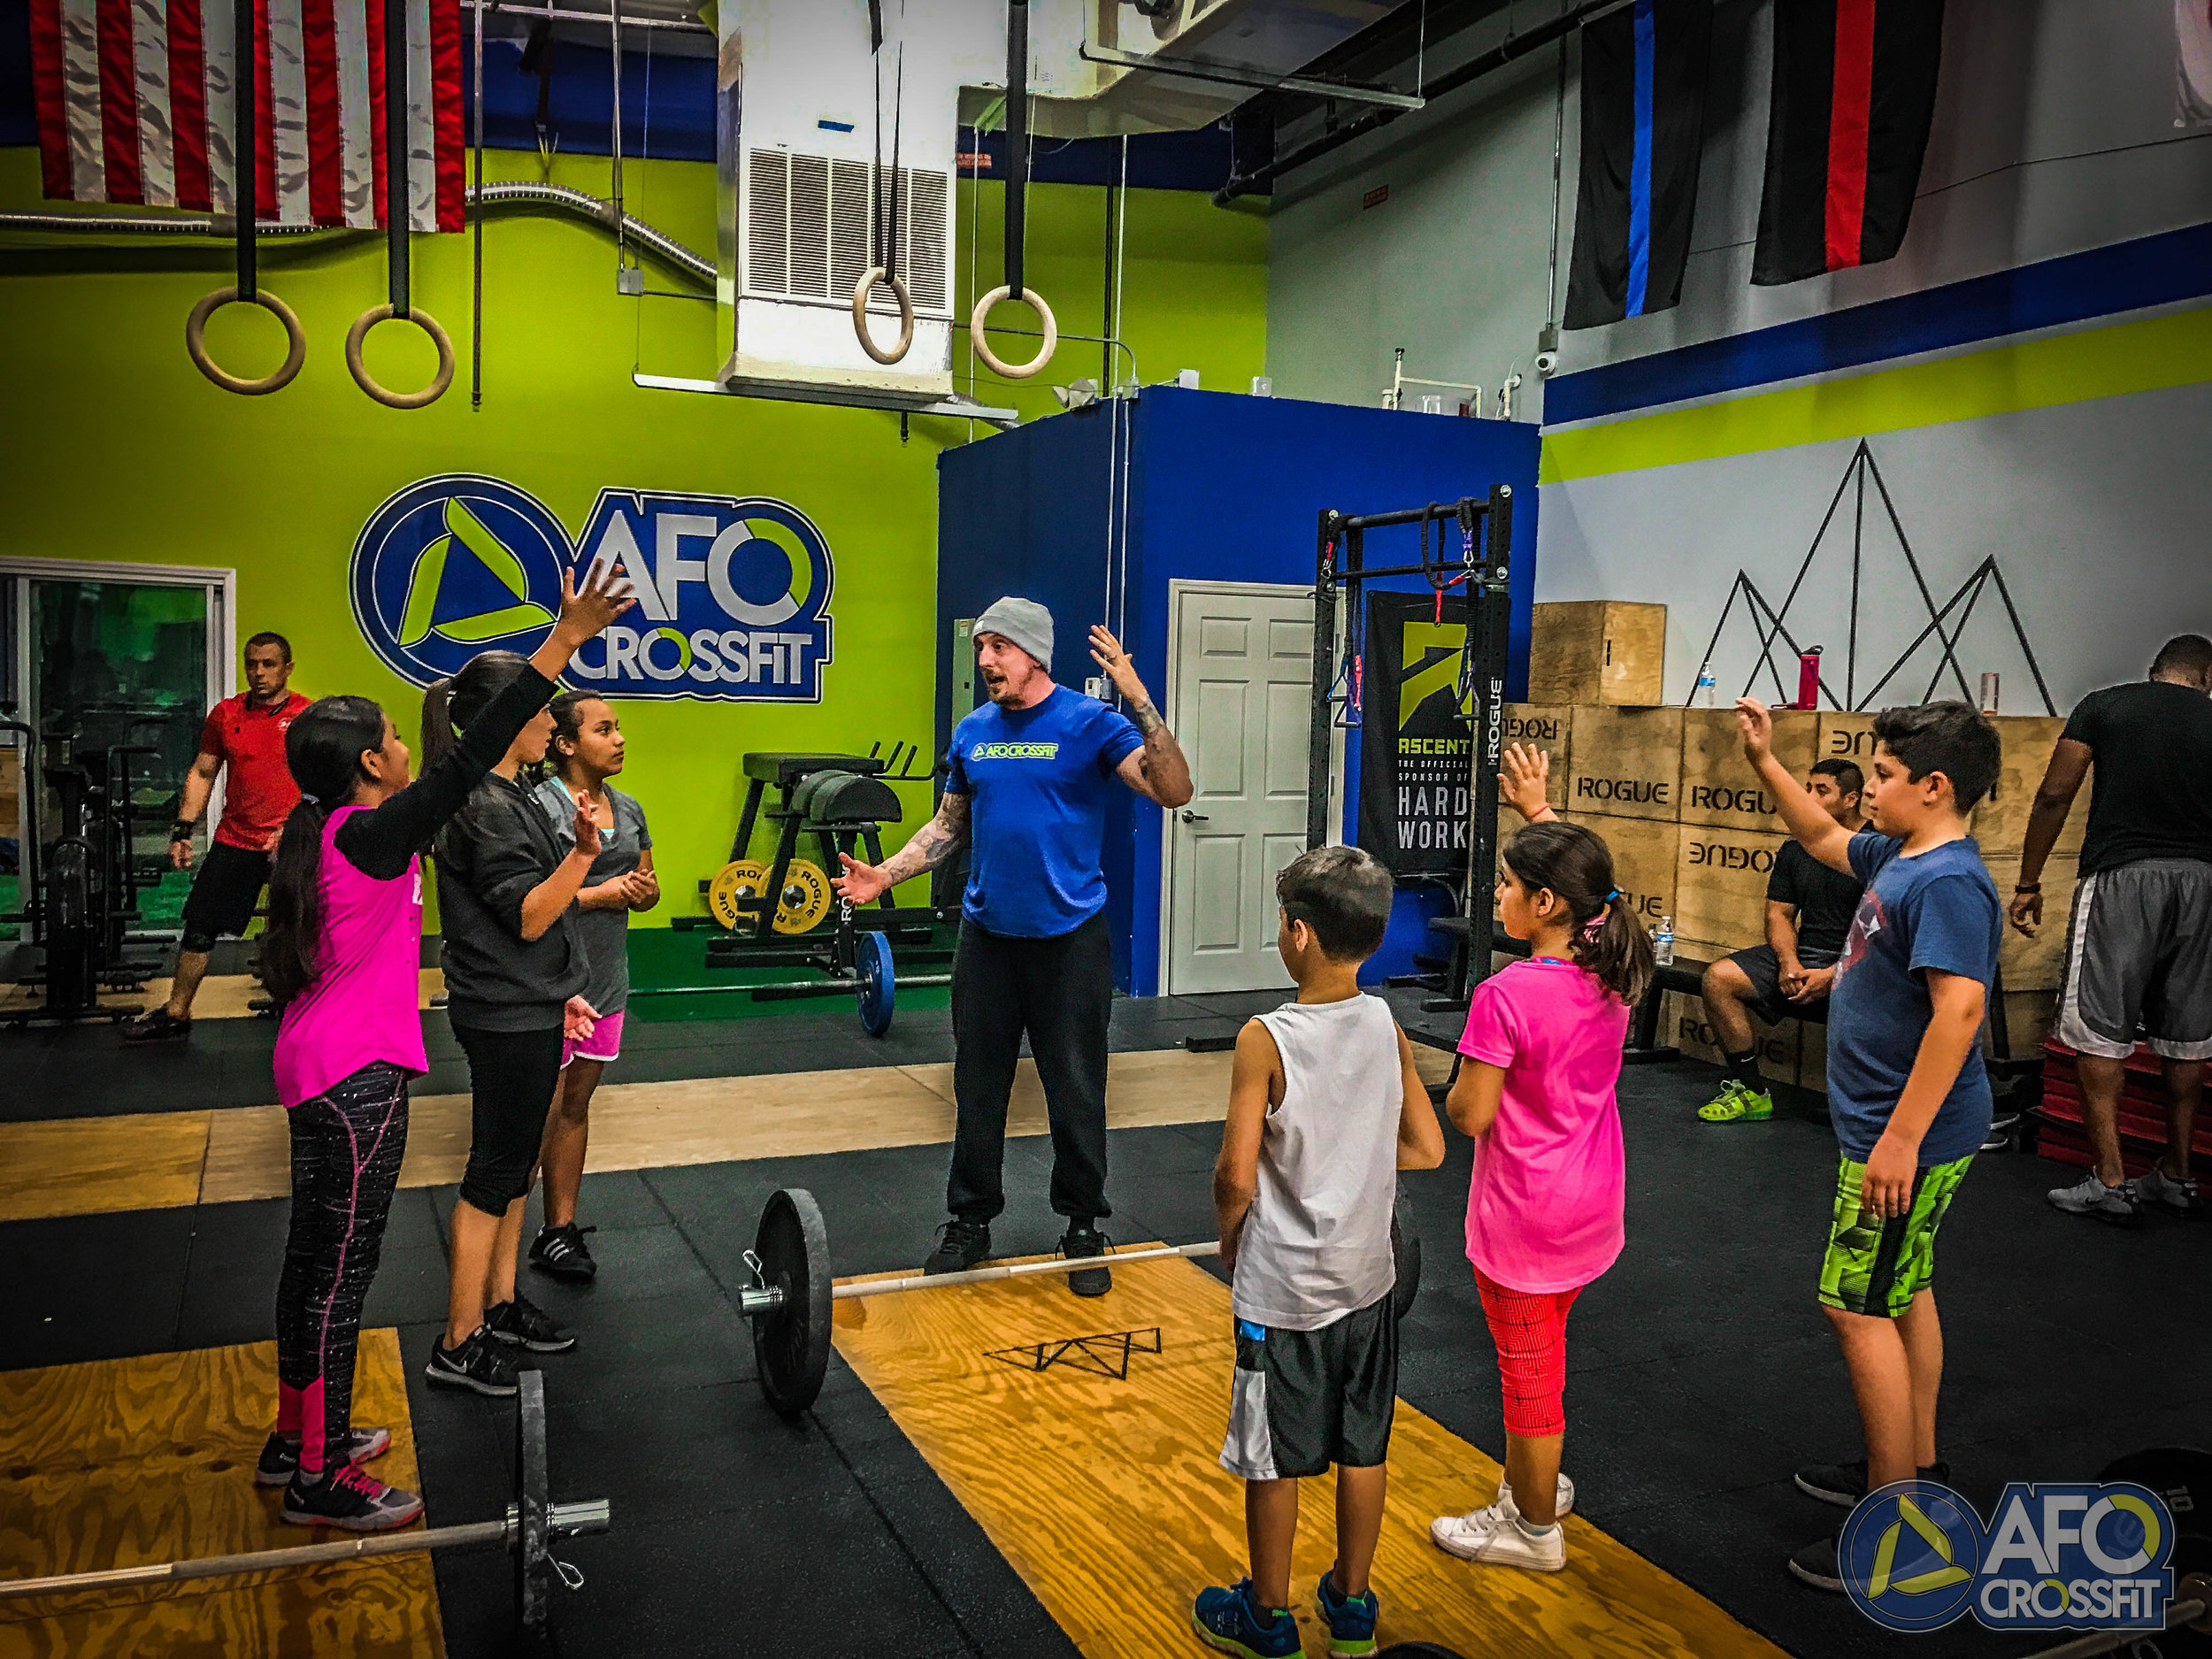 CF KIDS:  is a strength and conditioning program that is specifically designed for kids and teenagers and helps them develop a life long love of fitness. In a group setting, kids participate in fun and engaging workouts that deliver measurable results and prepare them to be well rounded athletes. The movements involved in Youth Athletics include all the things kids do when they play, pull, push, run, throw, climb, lift and jump. The program at AFO CrossFit focuses on providing an exciting and interactive environment that shows children you can have fun without an iPhone, iPad, Xbox etc.  Join Now